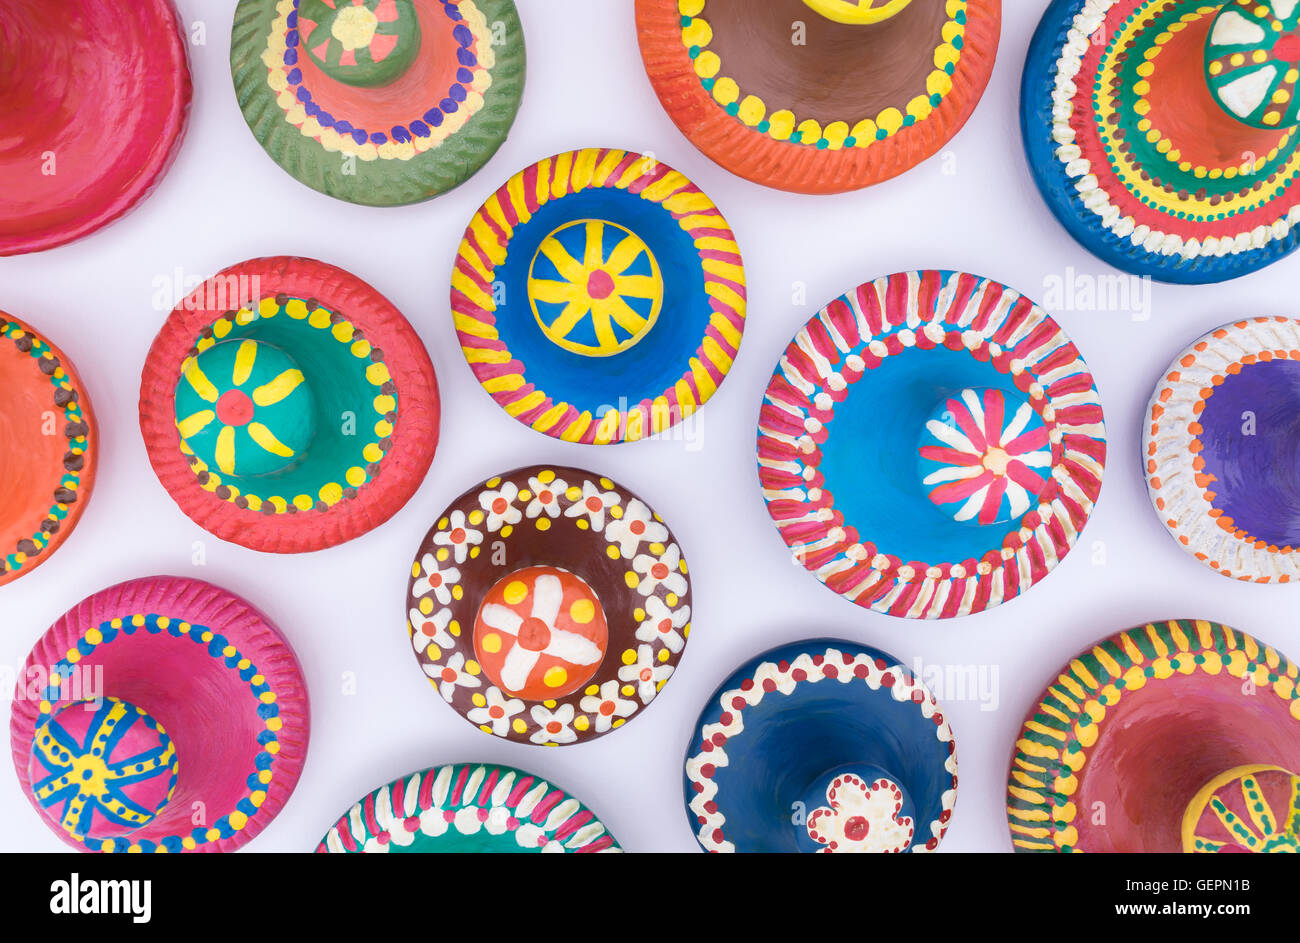 Composition of painted handmade pottery lids on white background - Stock Image